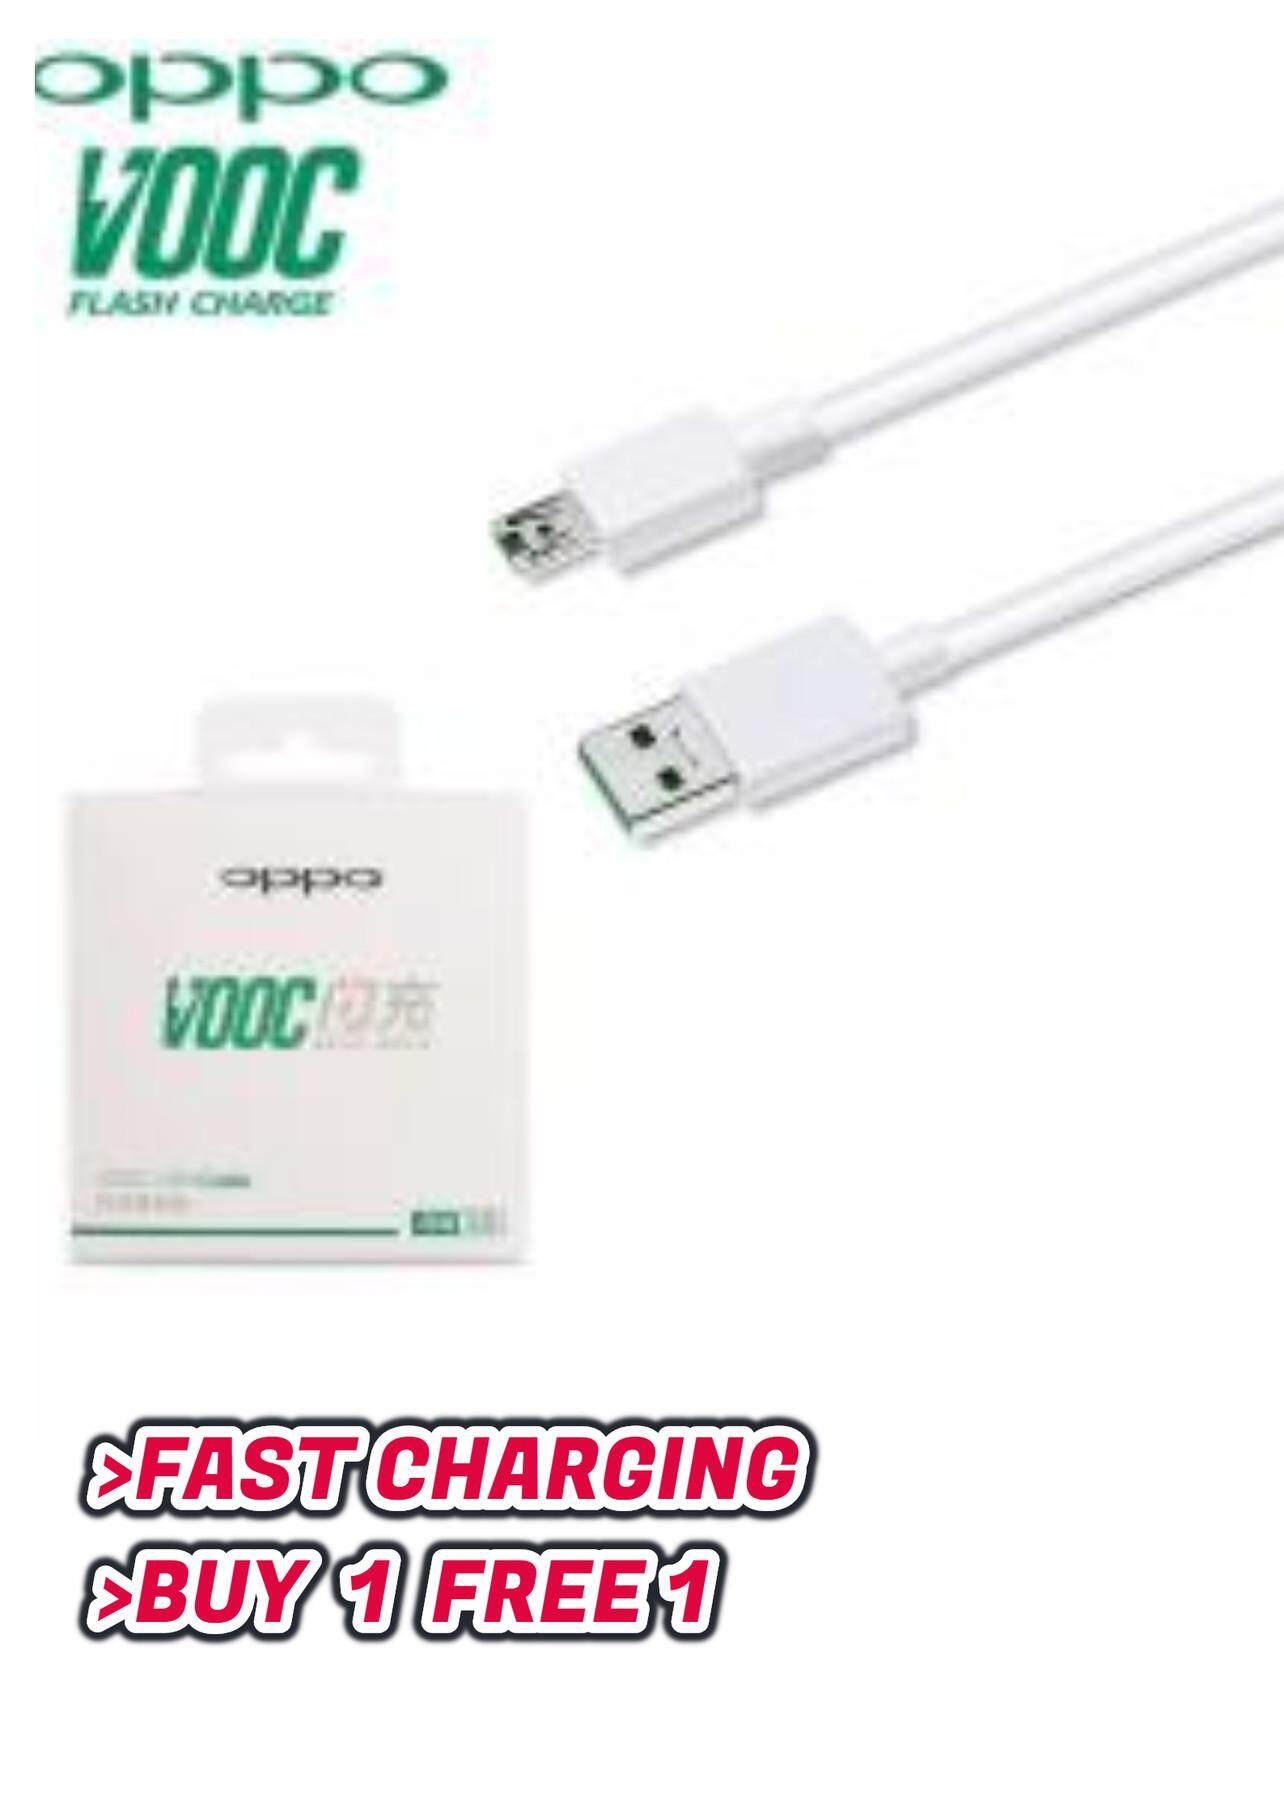 Buy Sell Cheapest Oppo Data Cable Best Quality Product Deals Kabel Vooc Fast Charging Original Bbyoriginal Flash Micro Usb Sync